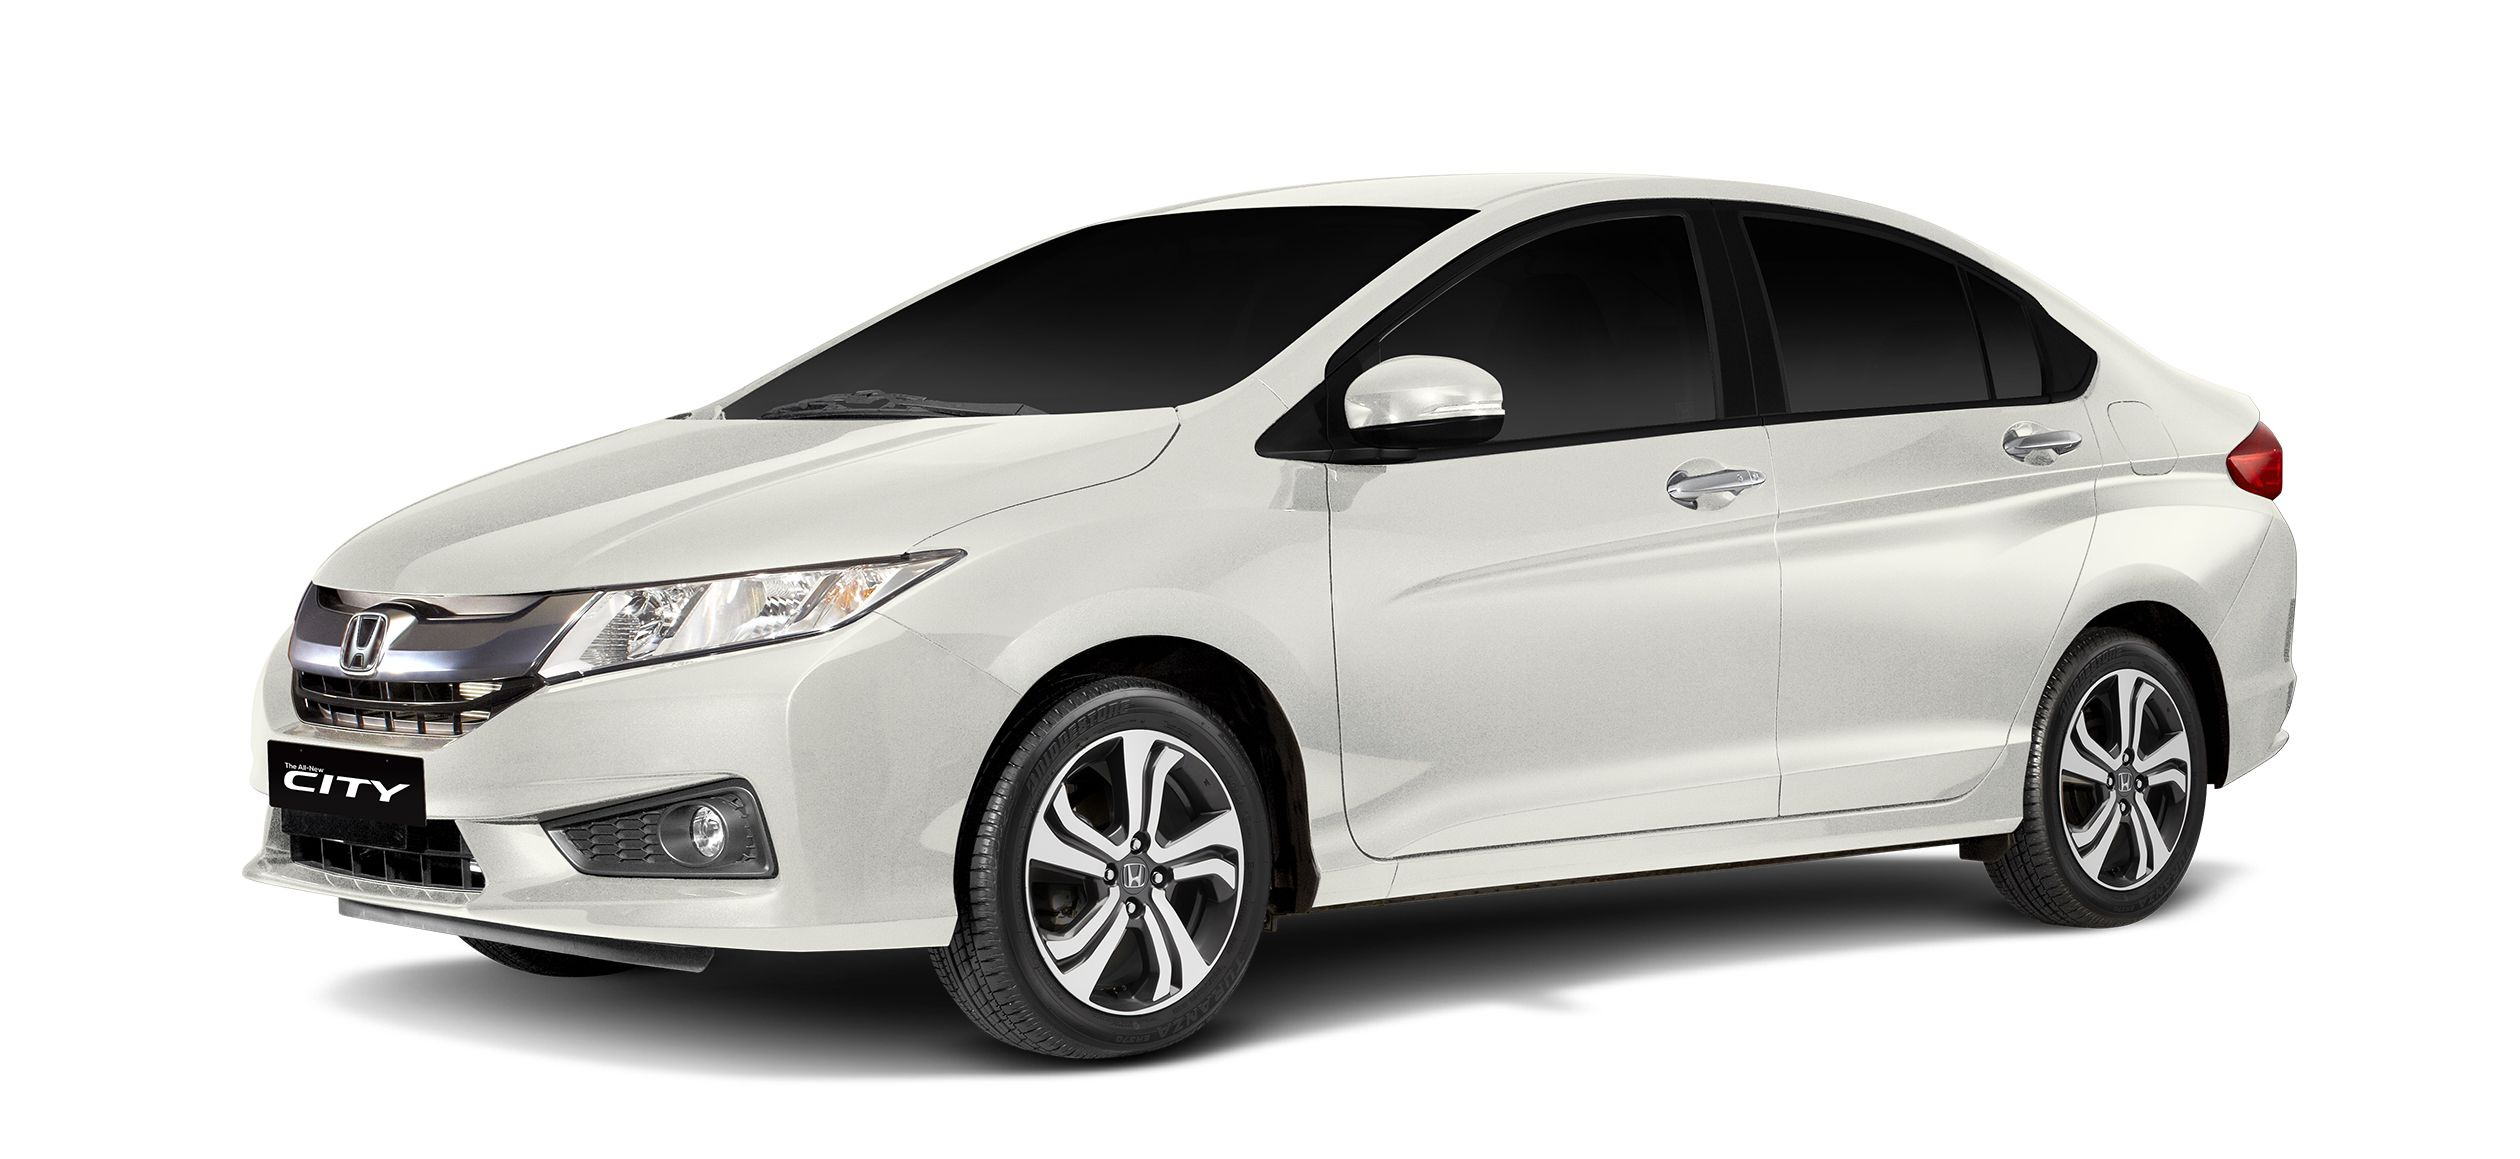 Honda Cars Philippines Price List Auto Search